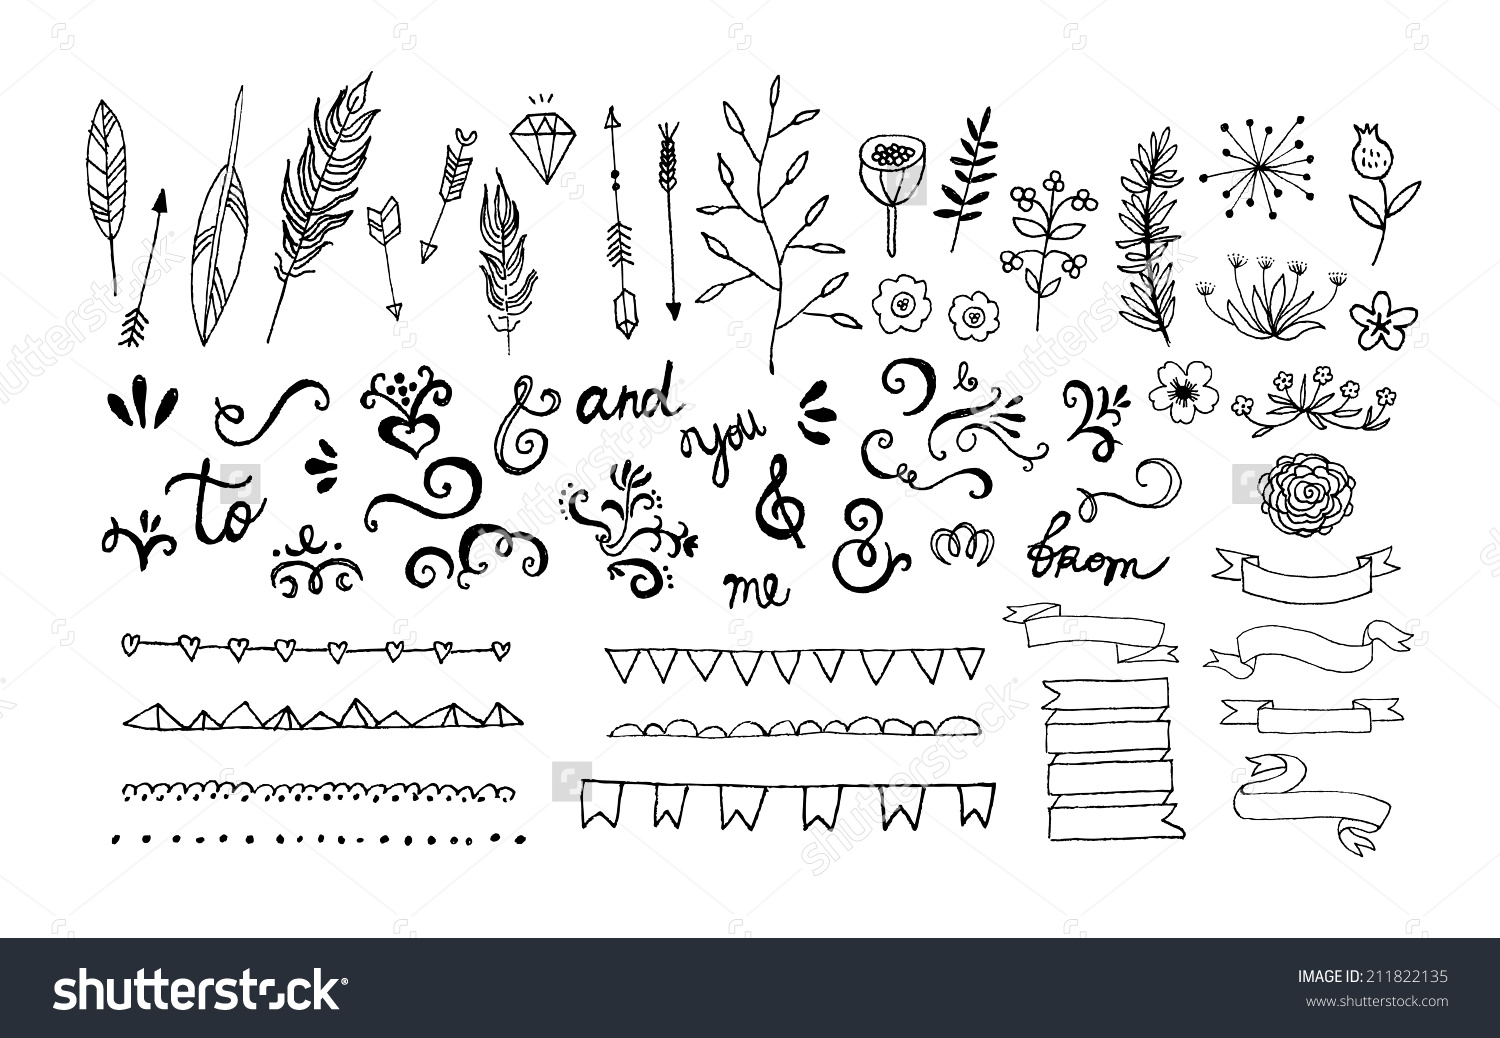 1500x1038 Stock Vector Hand Drawn Vintage Floral Elements Swirls Arrows